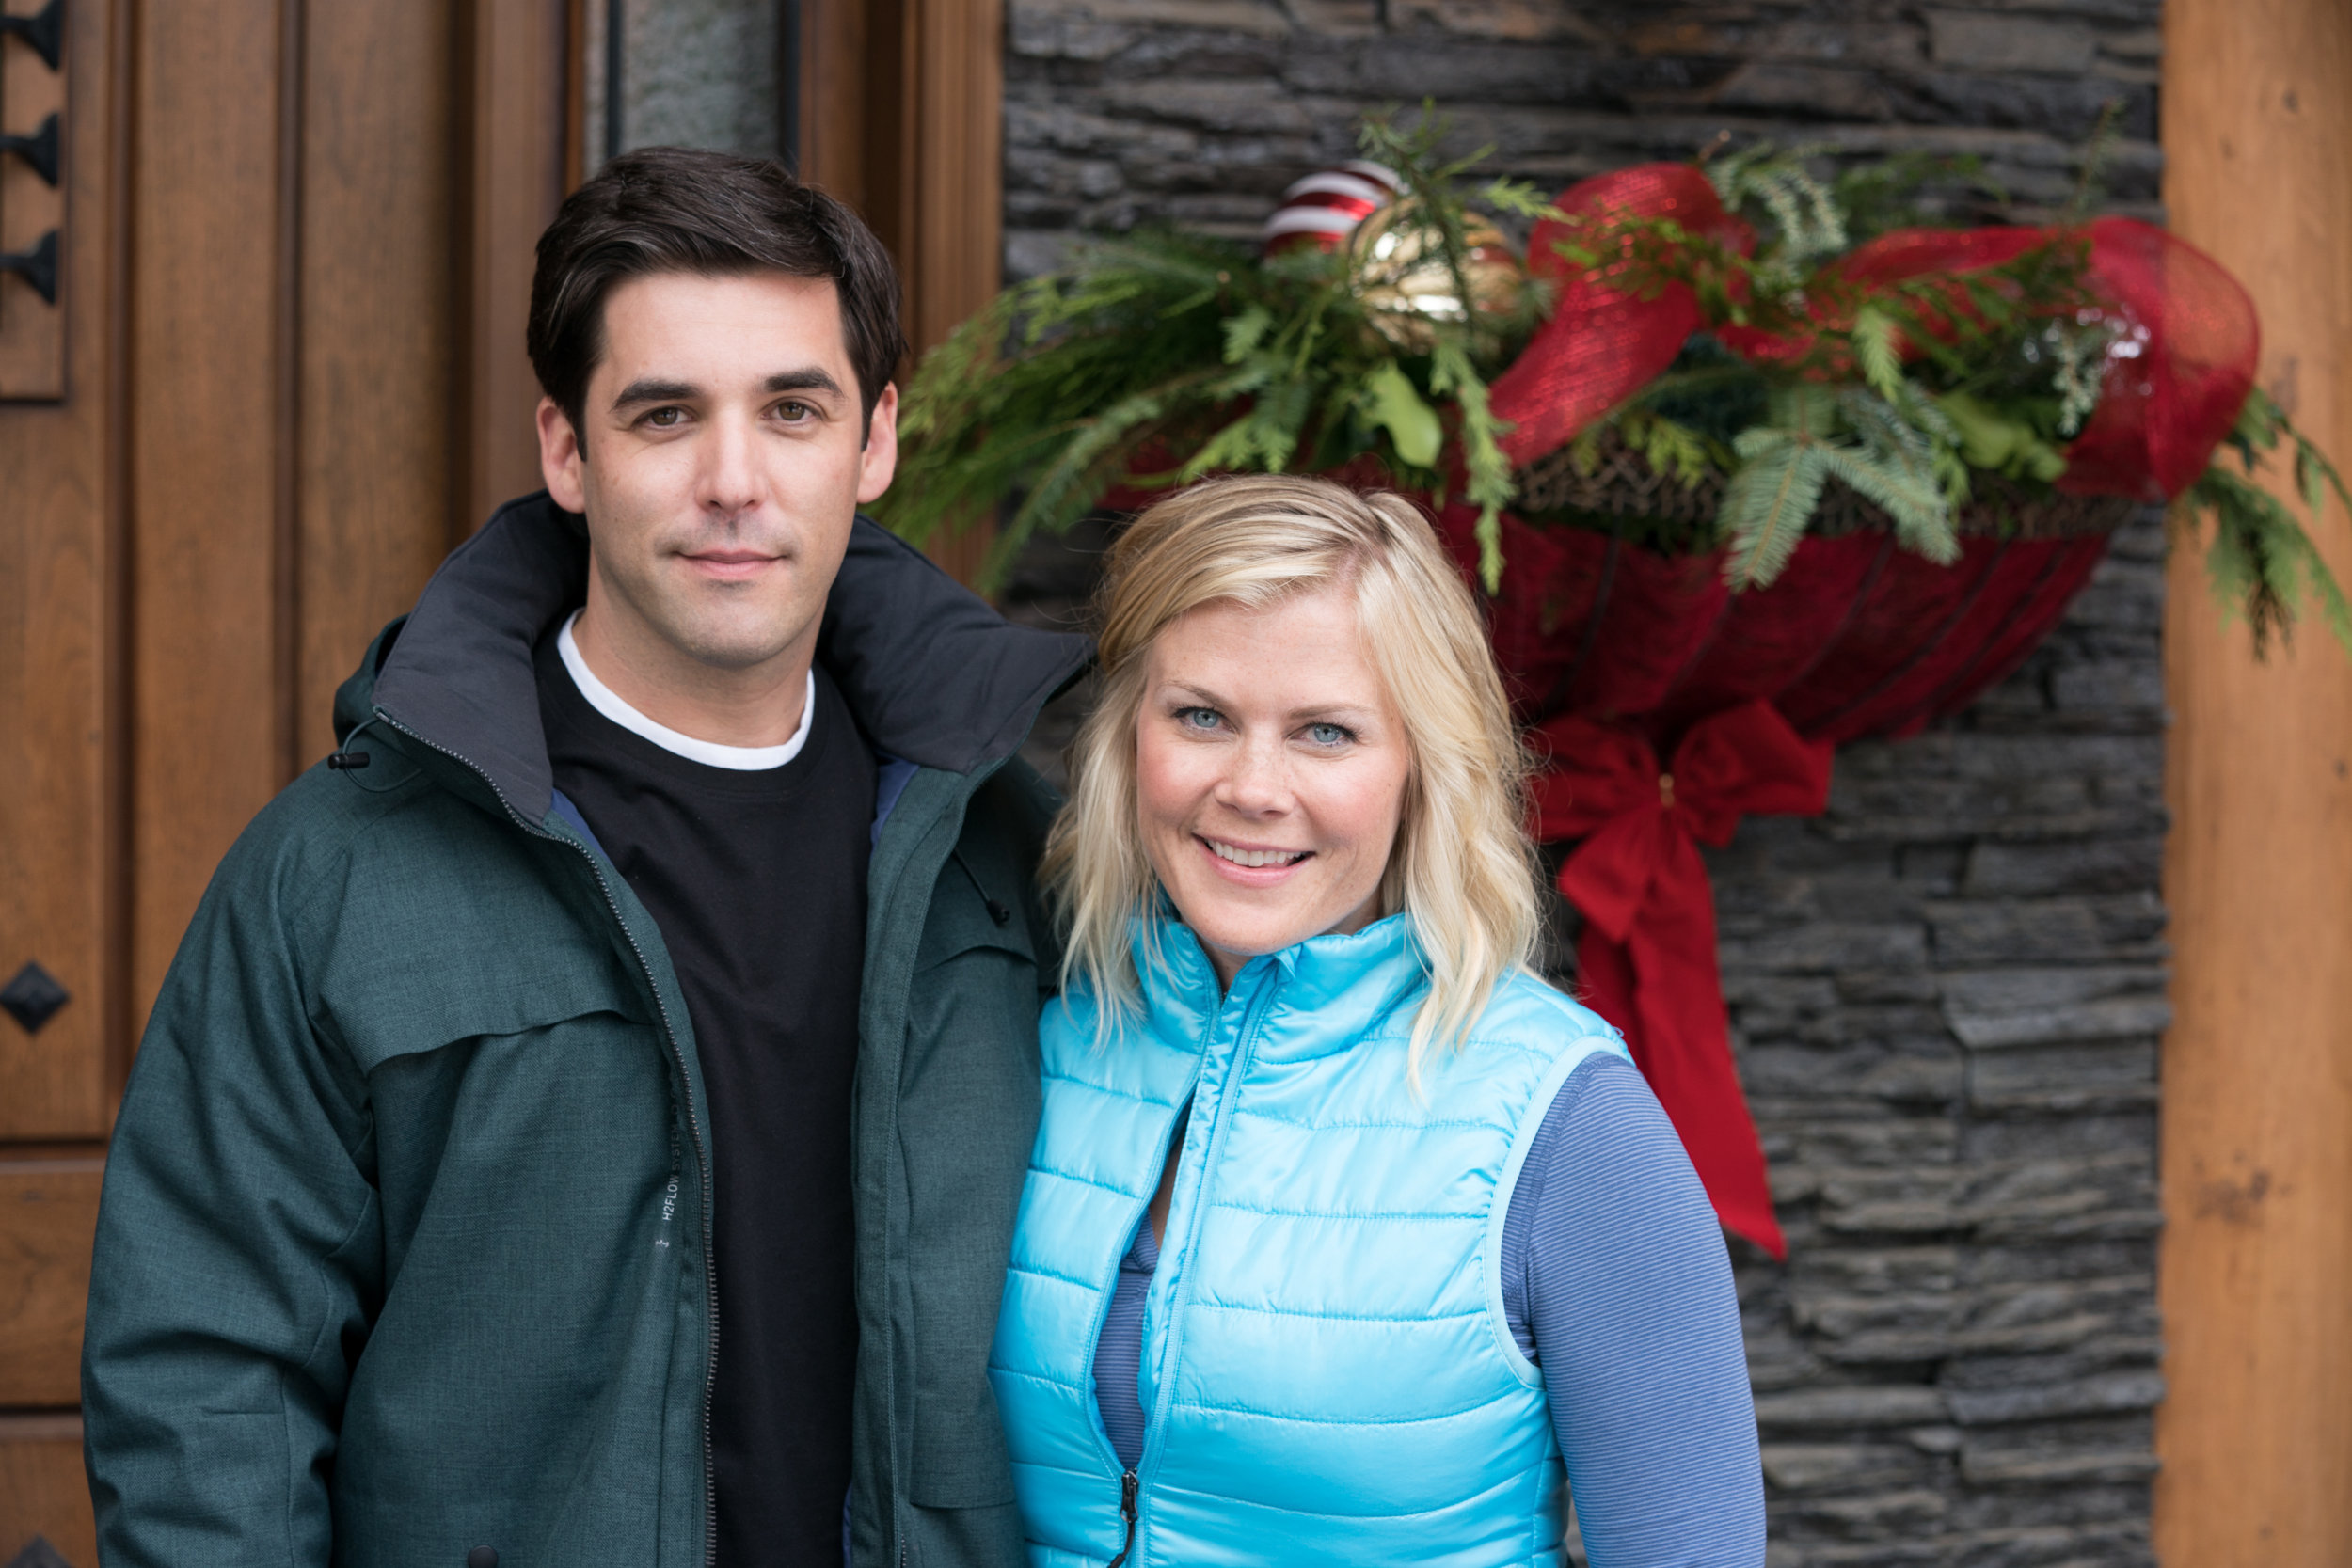 Christmas At Holly Lodge Cast.Cast Interviews Working With Alison Sweeney Christmas At